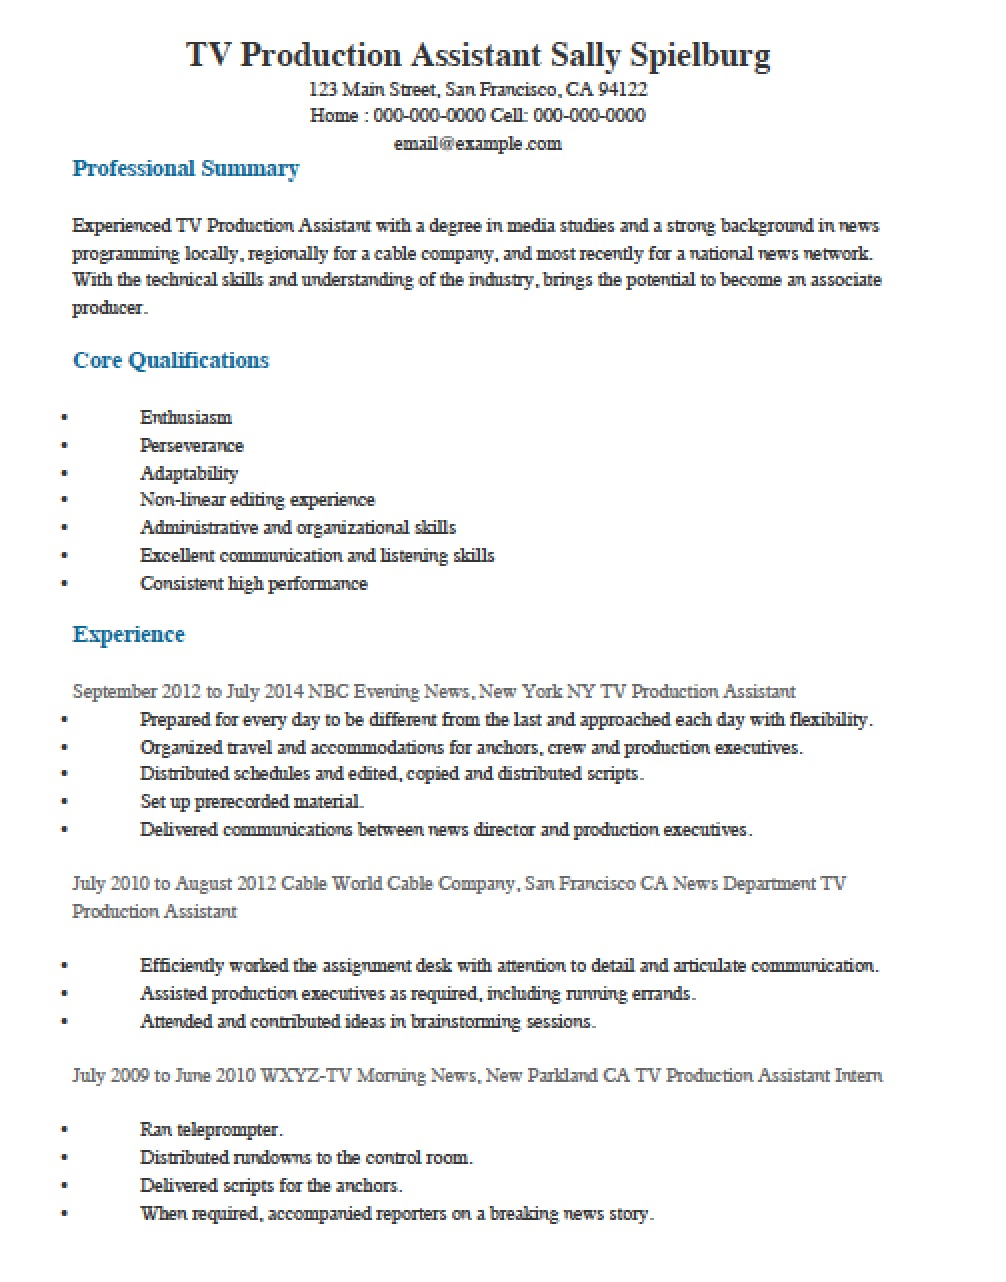 resume Production Assistant Resume free television tv production assistant resume template sample adobe pdf rich text rtf microsoft word